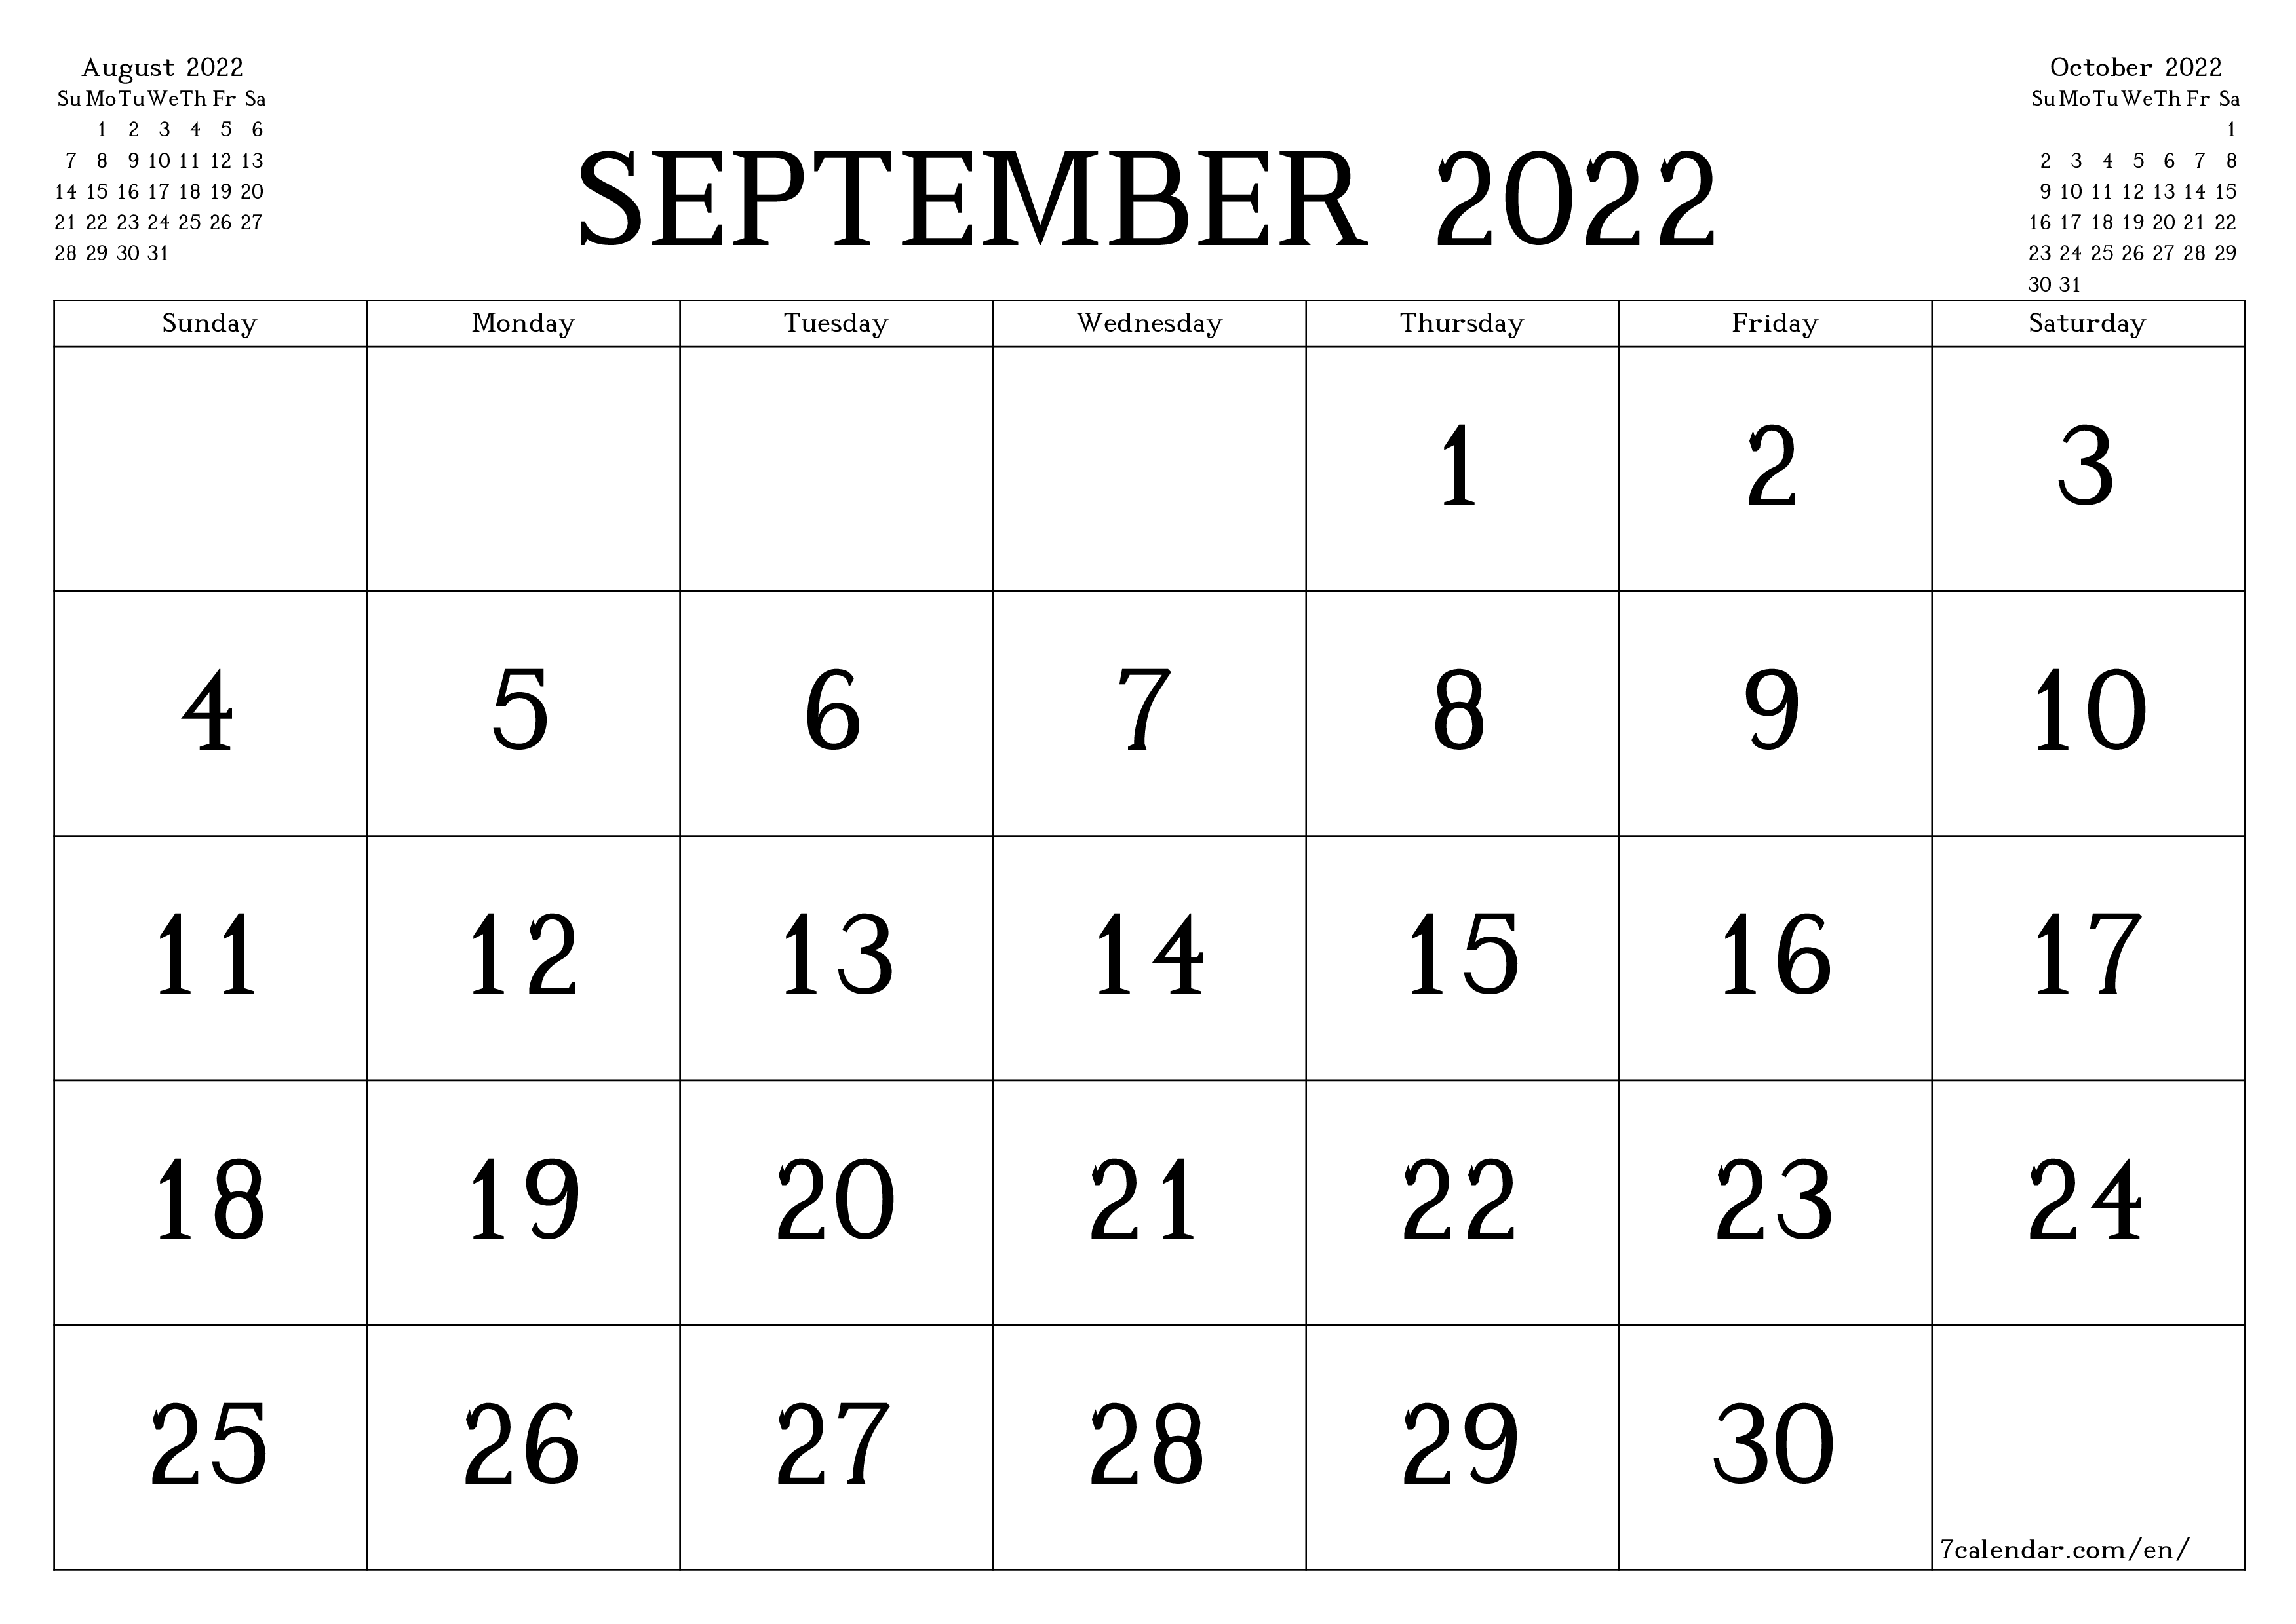 Blank monthly calendar for month September 2022 save and print to PDF  - 7calendar.com